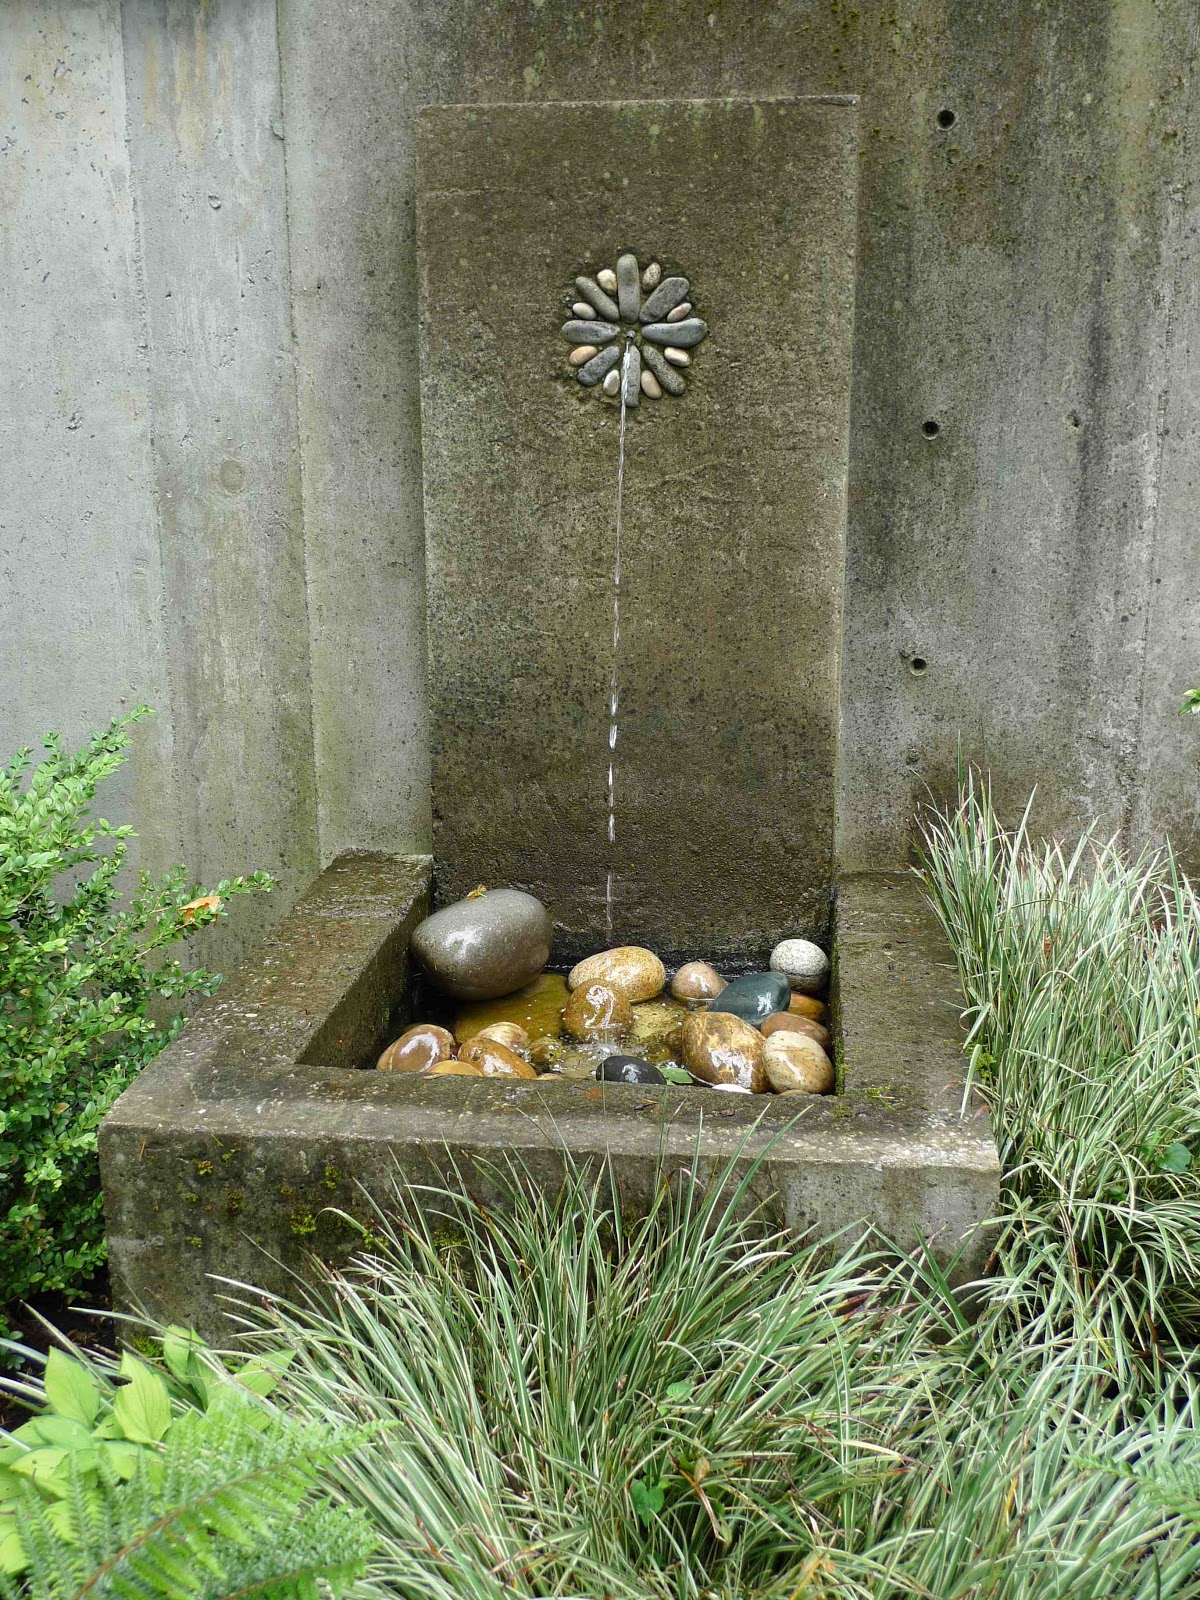 A Simple Cast Concrete Wall Fountain In Garden I Built 2001